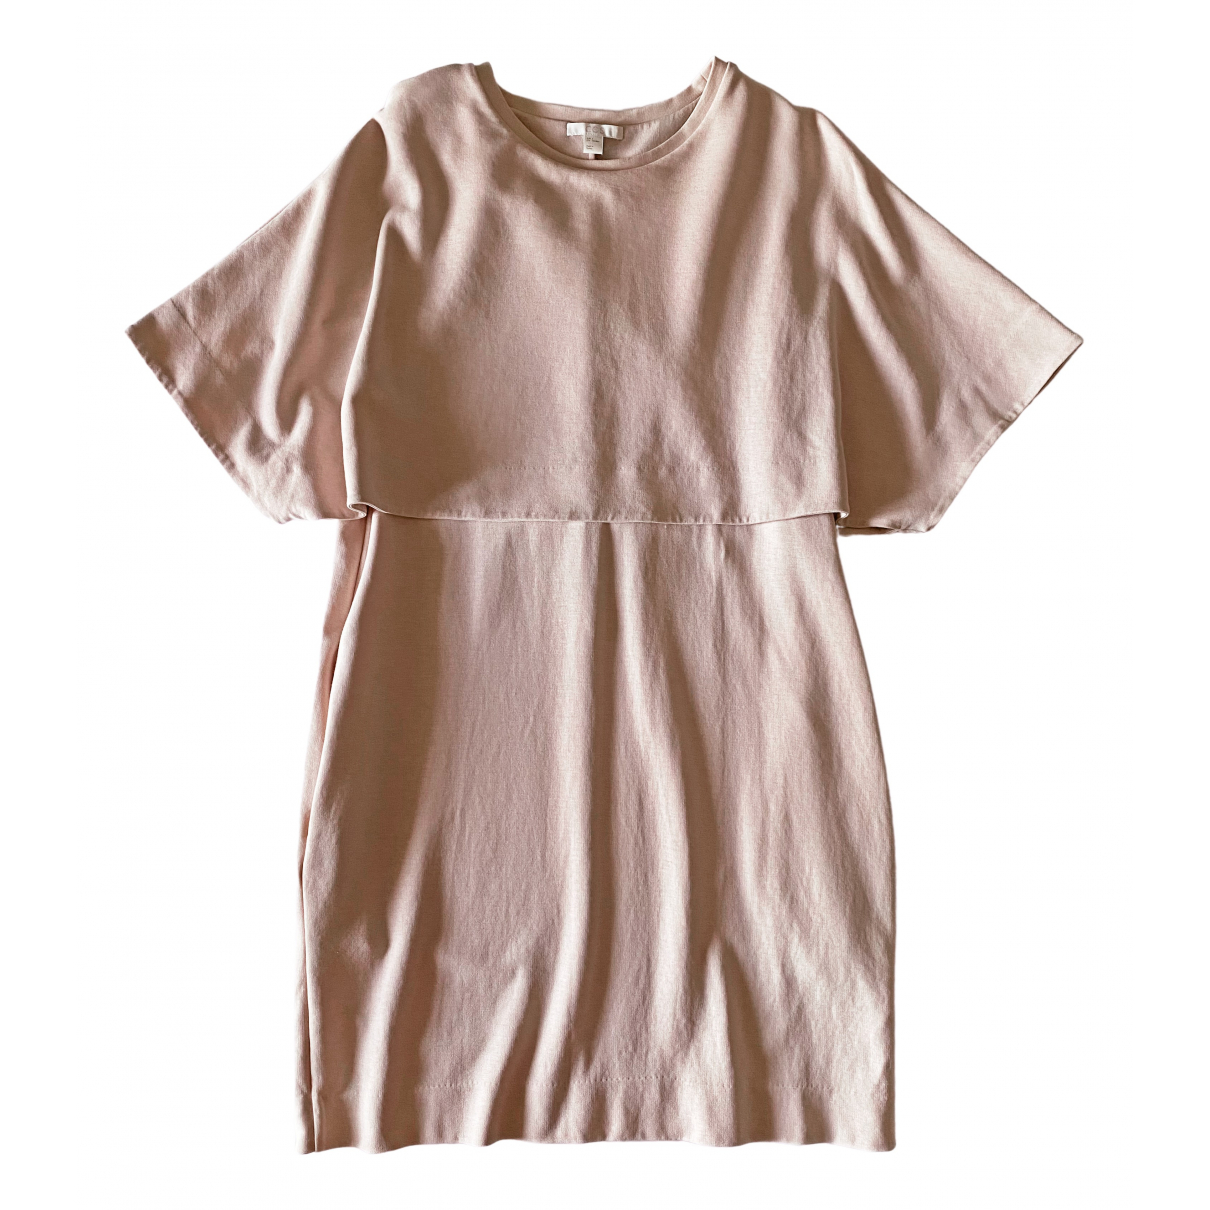 Cos \N Pink Cotton dress for Women S International